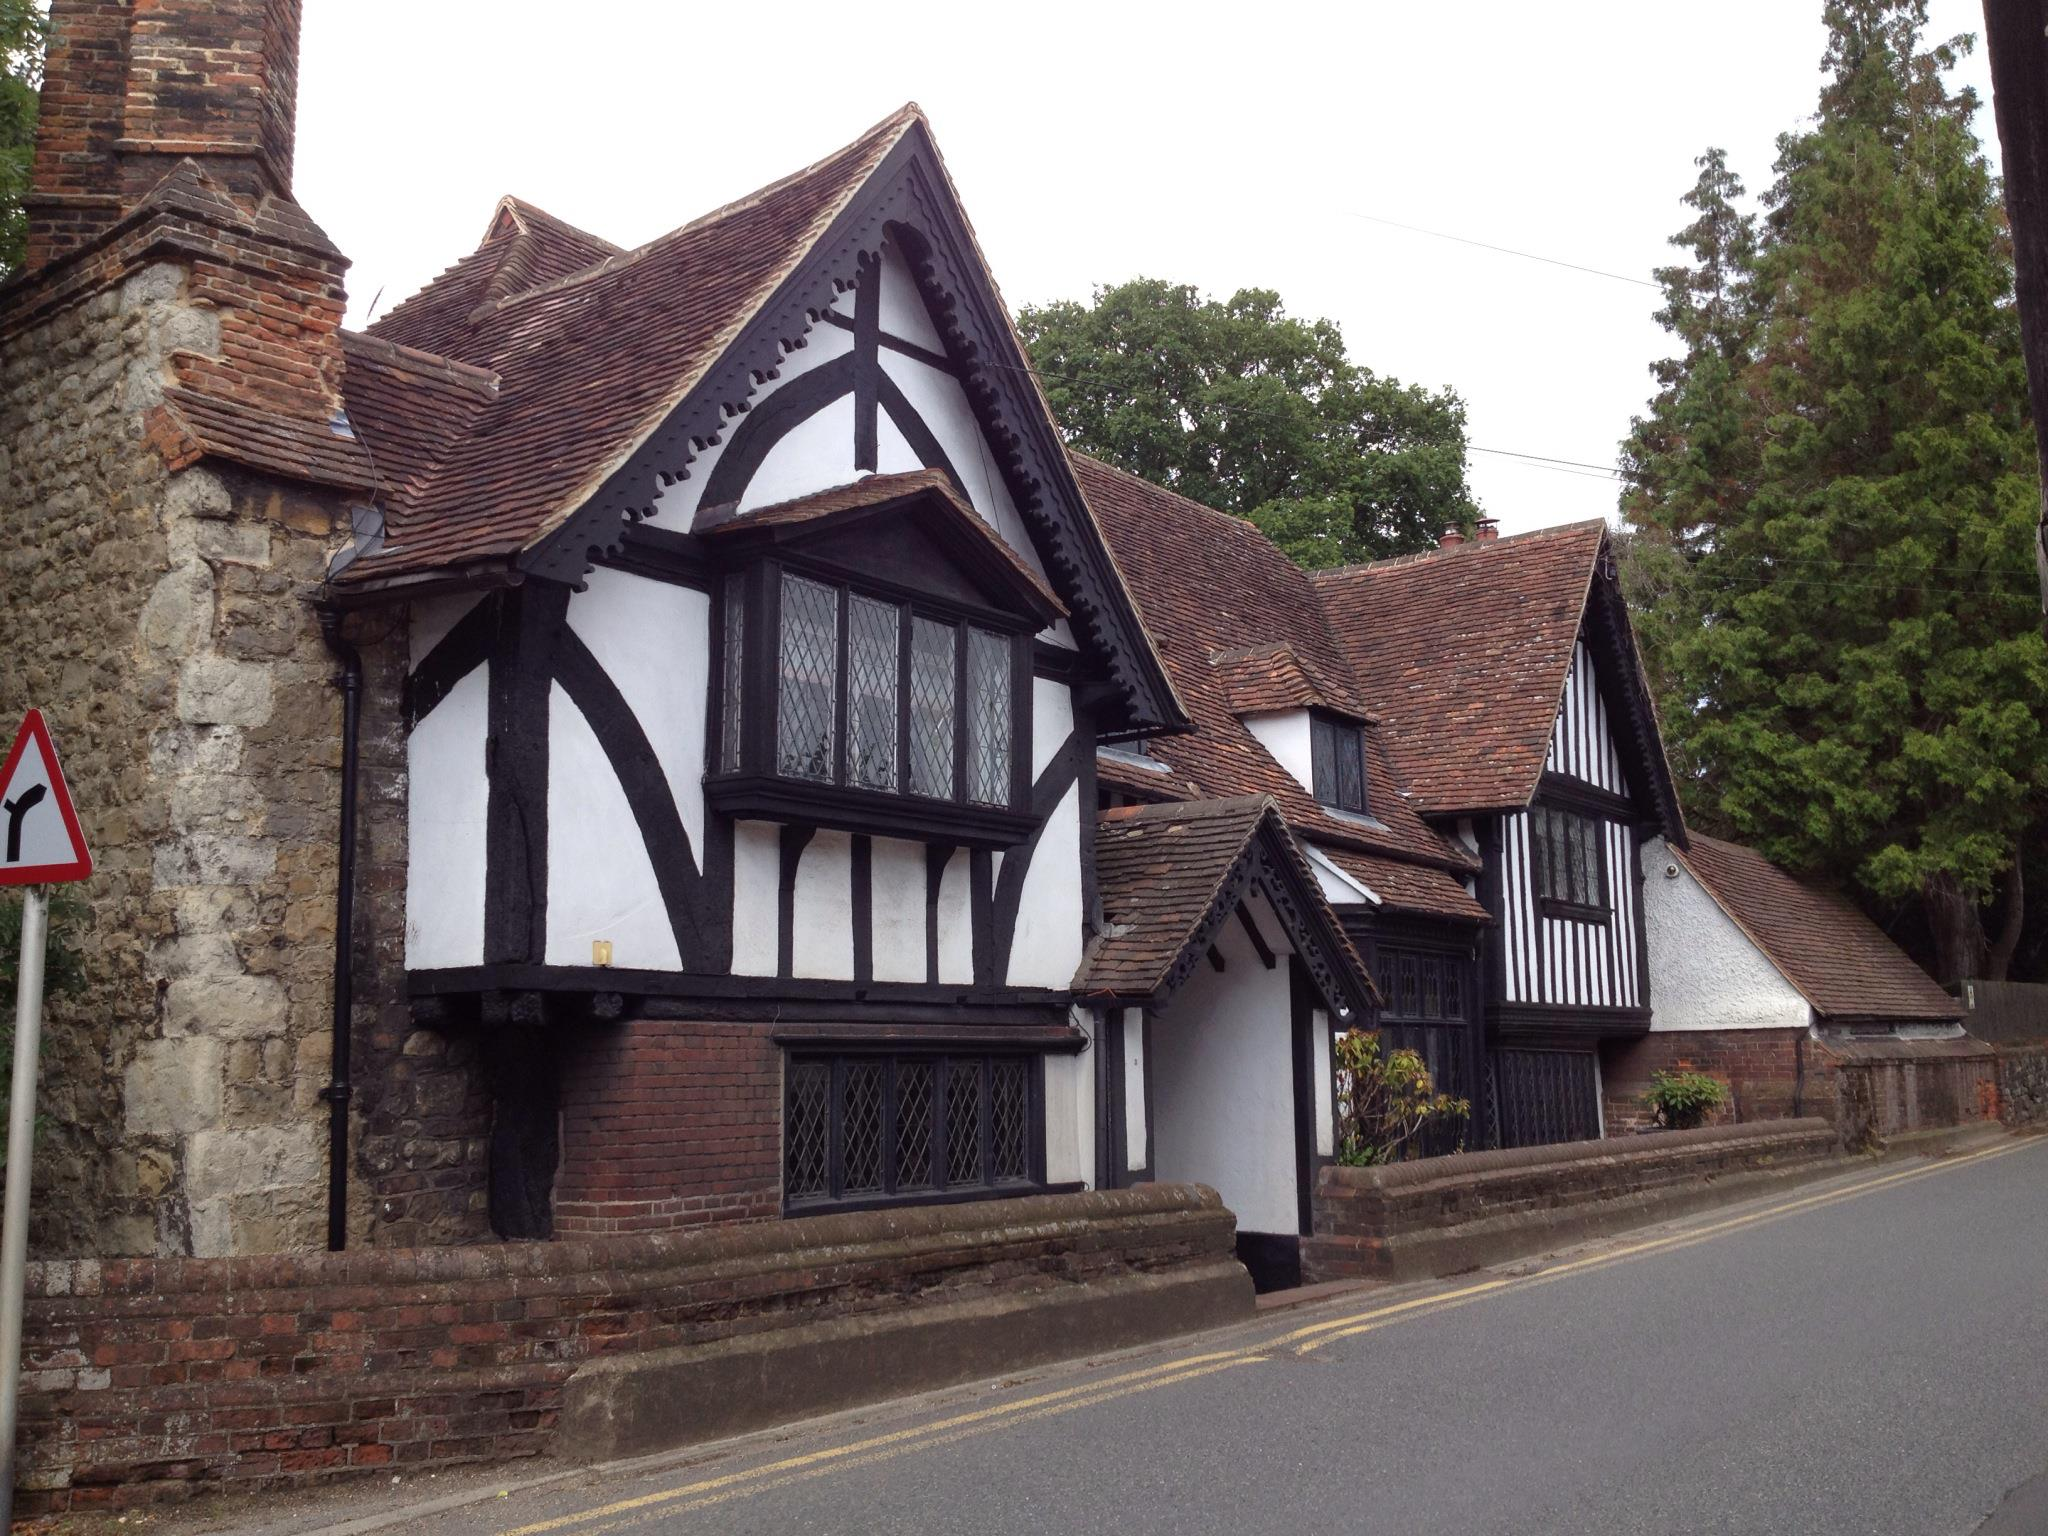 Town House, Ightham